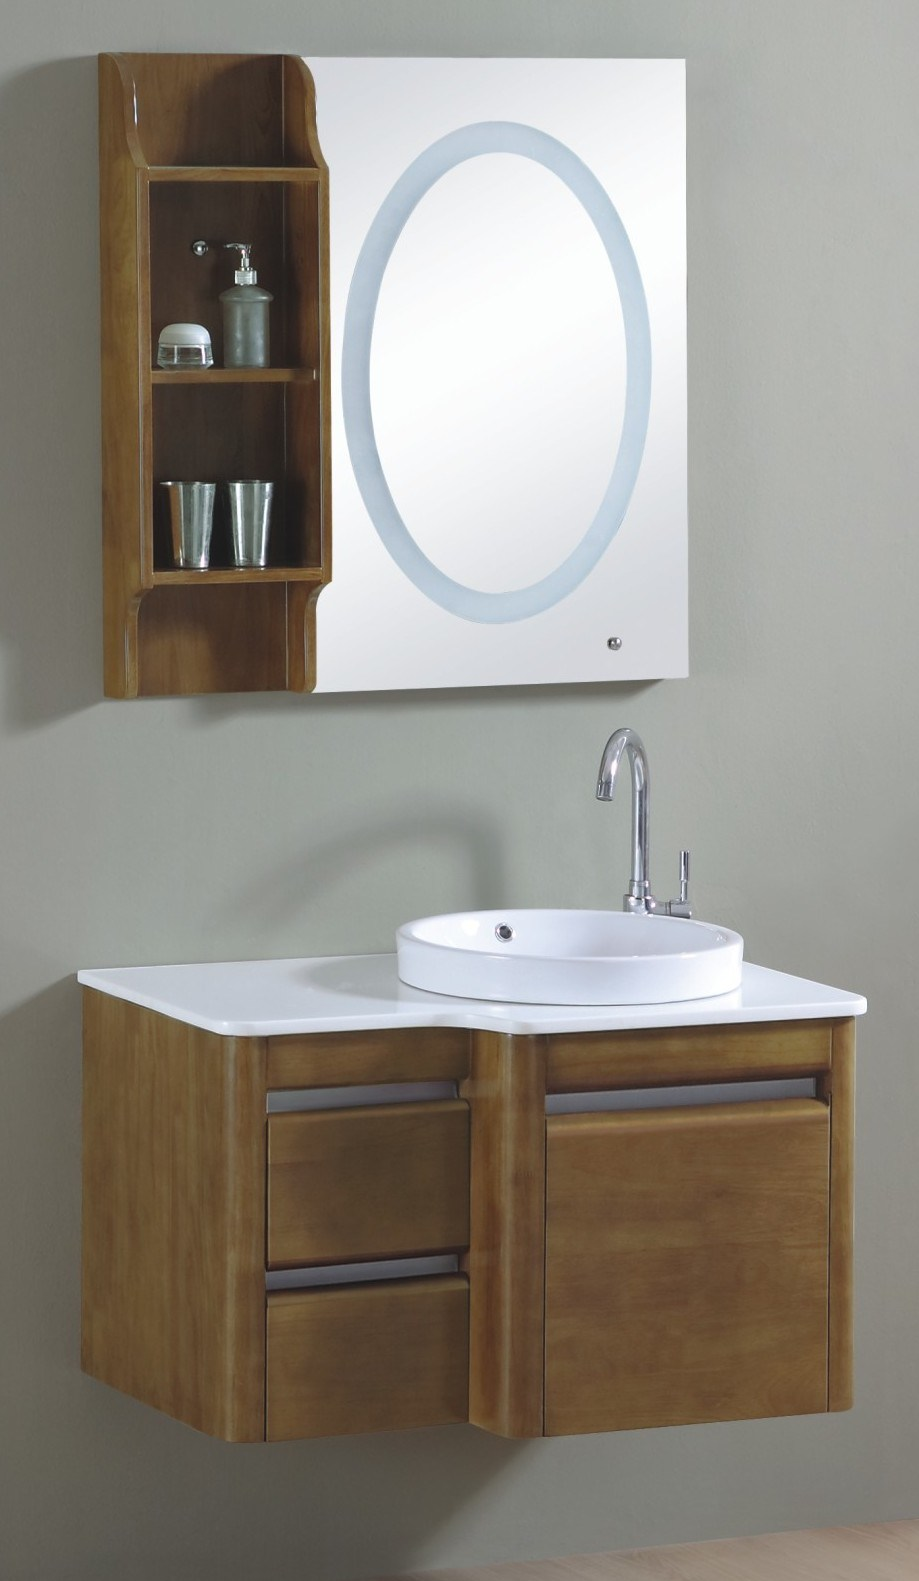 Gabinetes De Baño En Madera:Wall Cabinet for Bathroom Sink Ideas